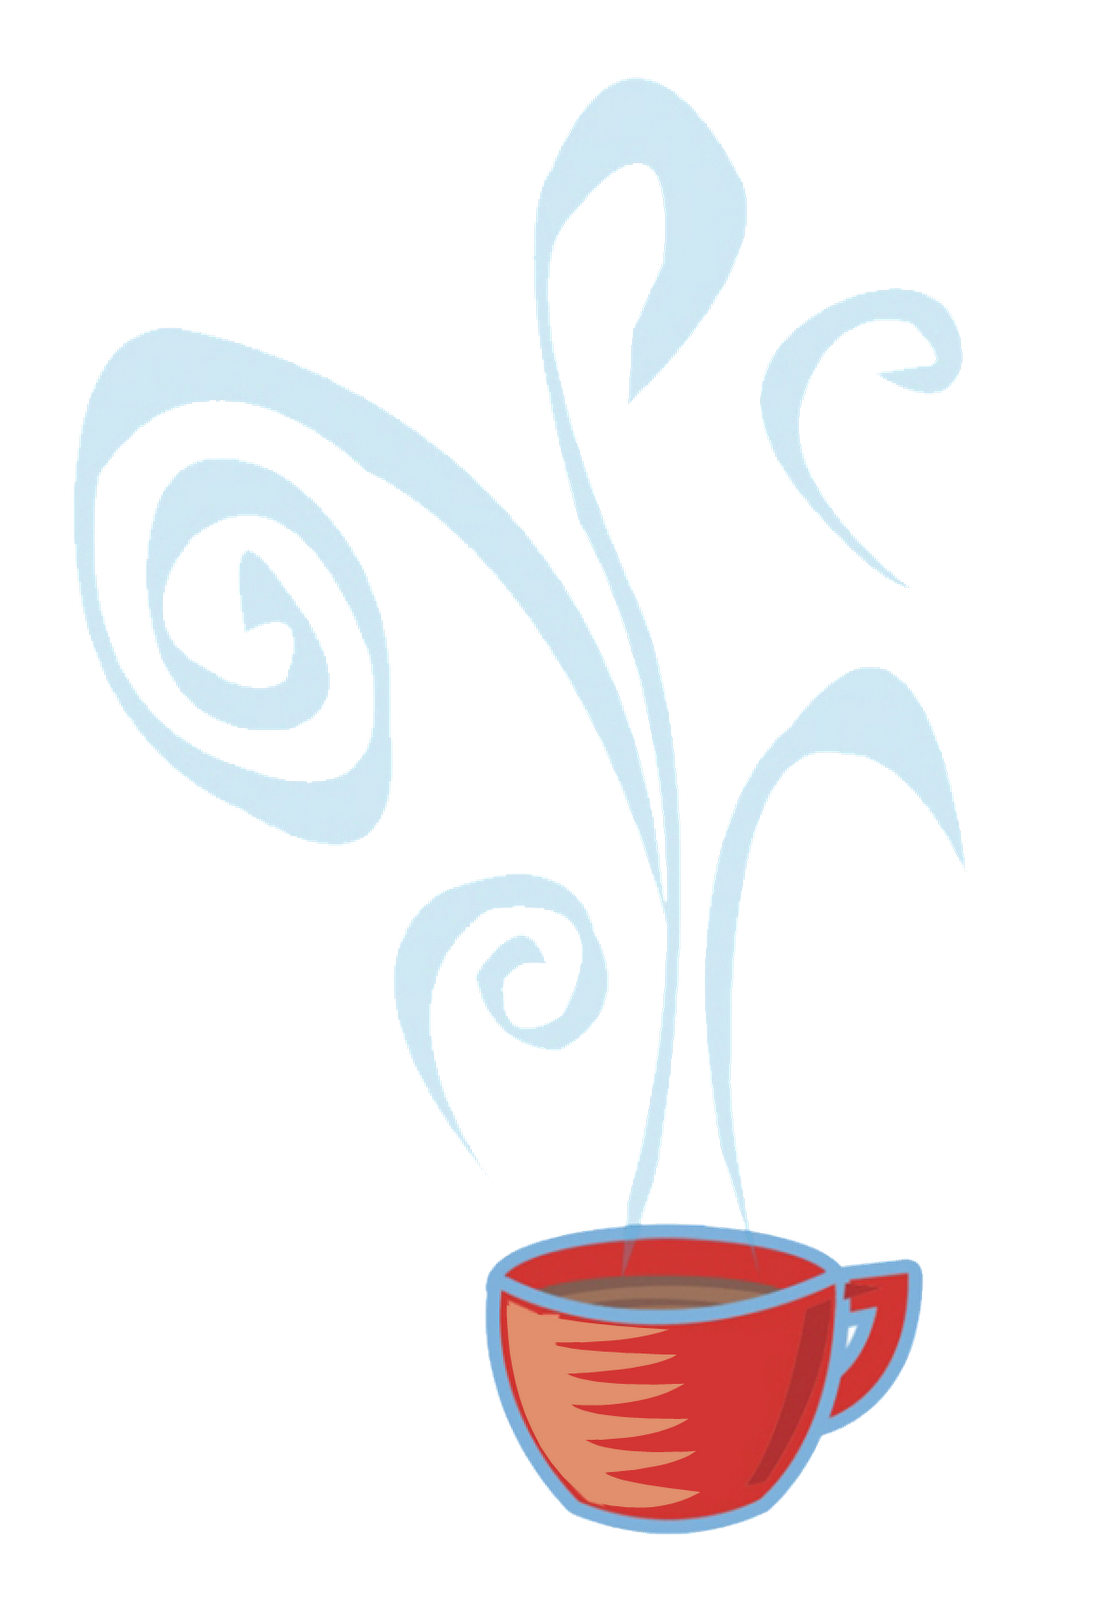 Cup clipart hot chocolate mug. Vector illustration of coffee